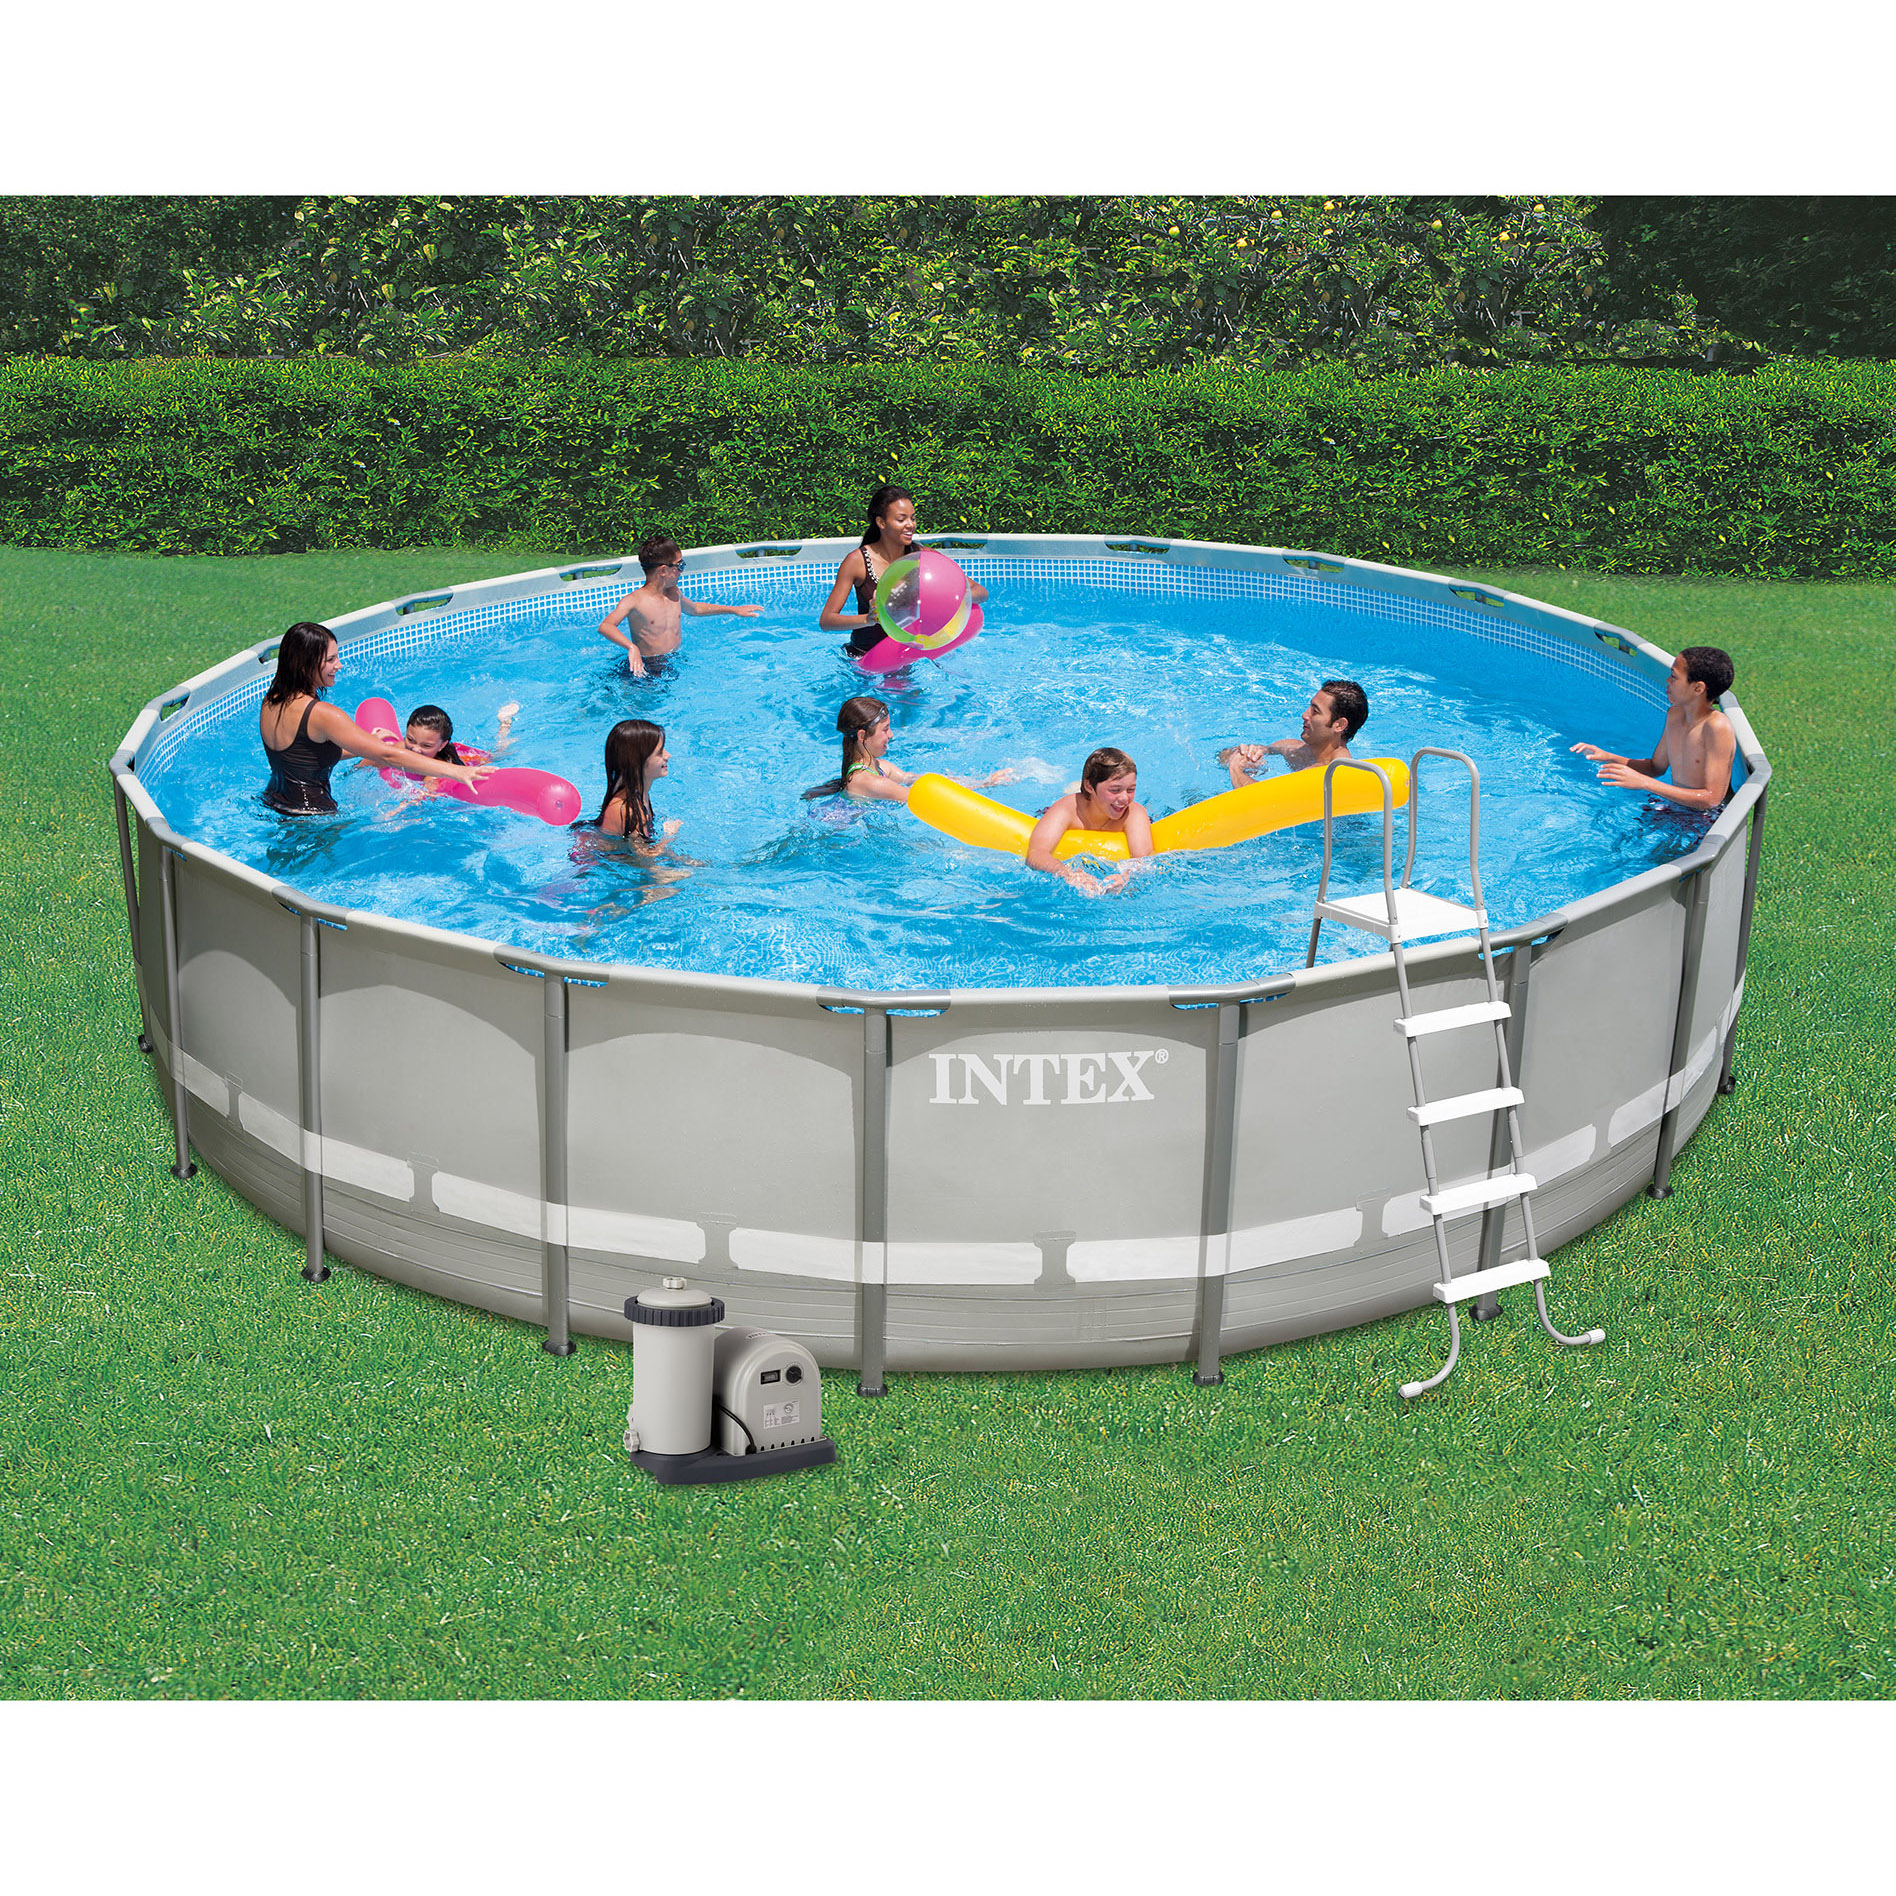 Intex 24 39 x 52 ultra frame above ground swimming pool set for On ground pools